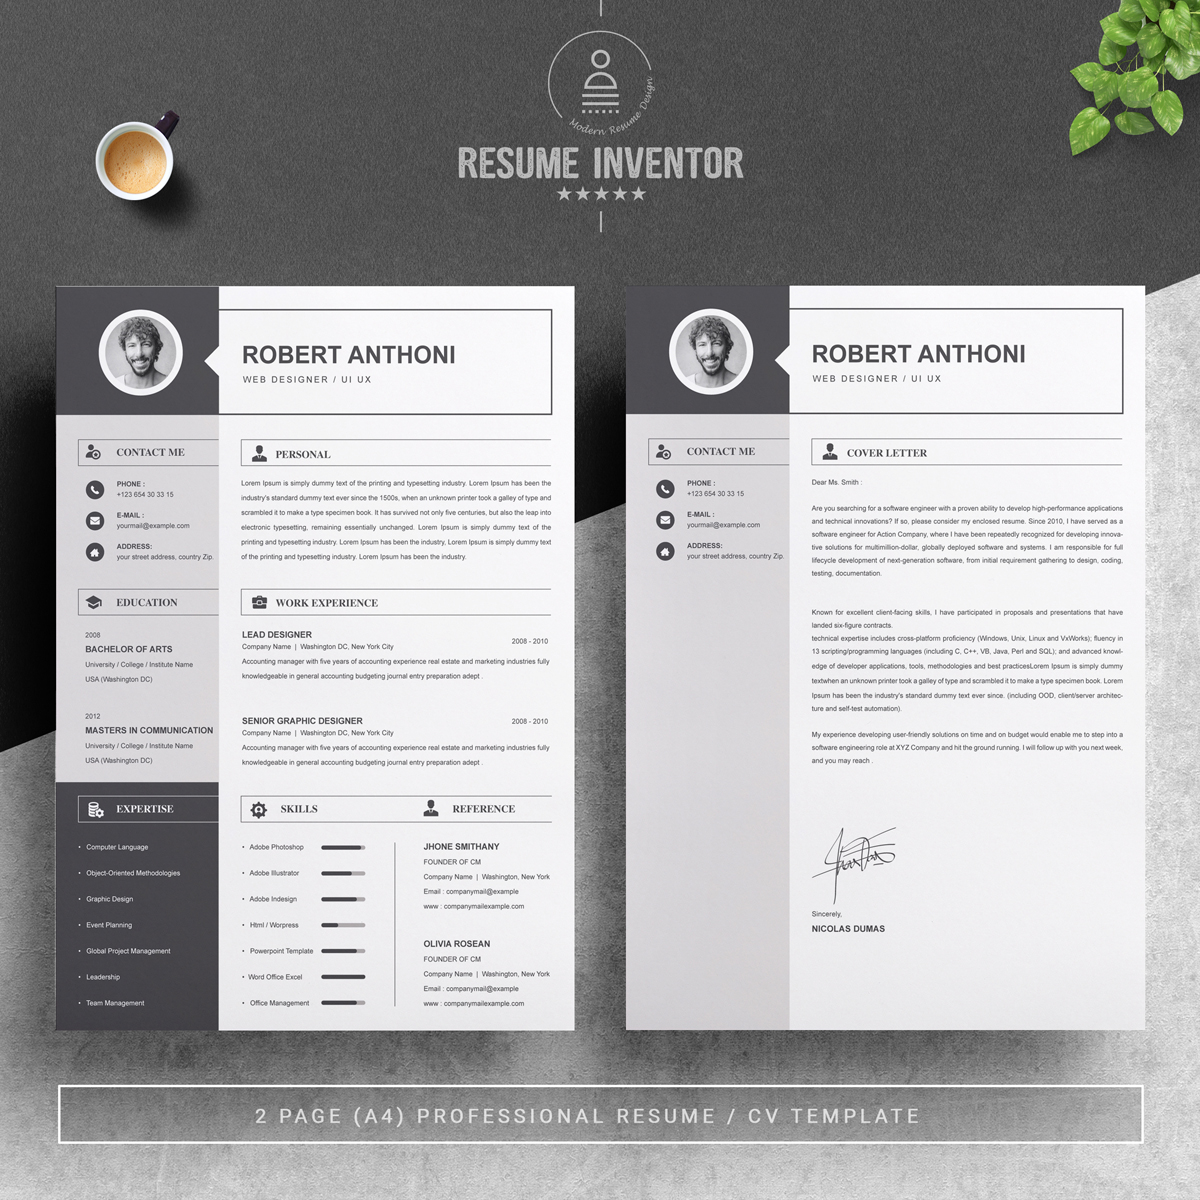 https://s3u.tmimgcdn.com/1860567-1573399824796_02_2%20Pages%20Free%20Resume%20Design%20Template.jpg